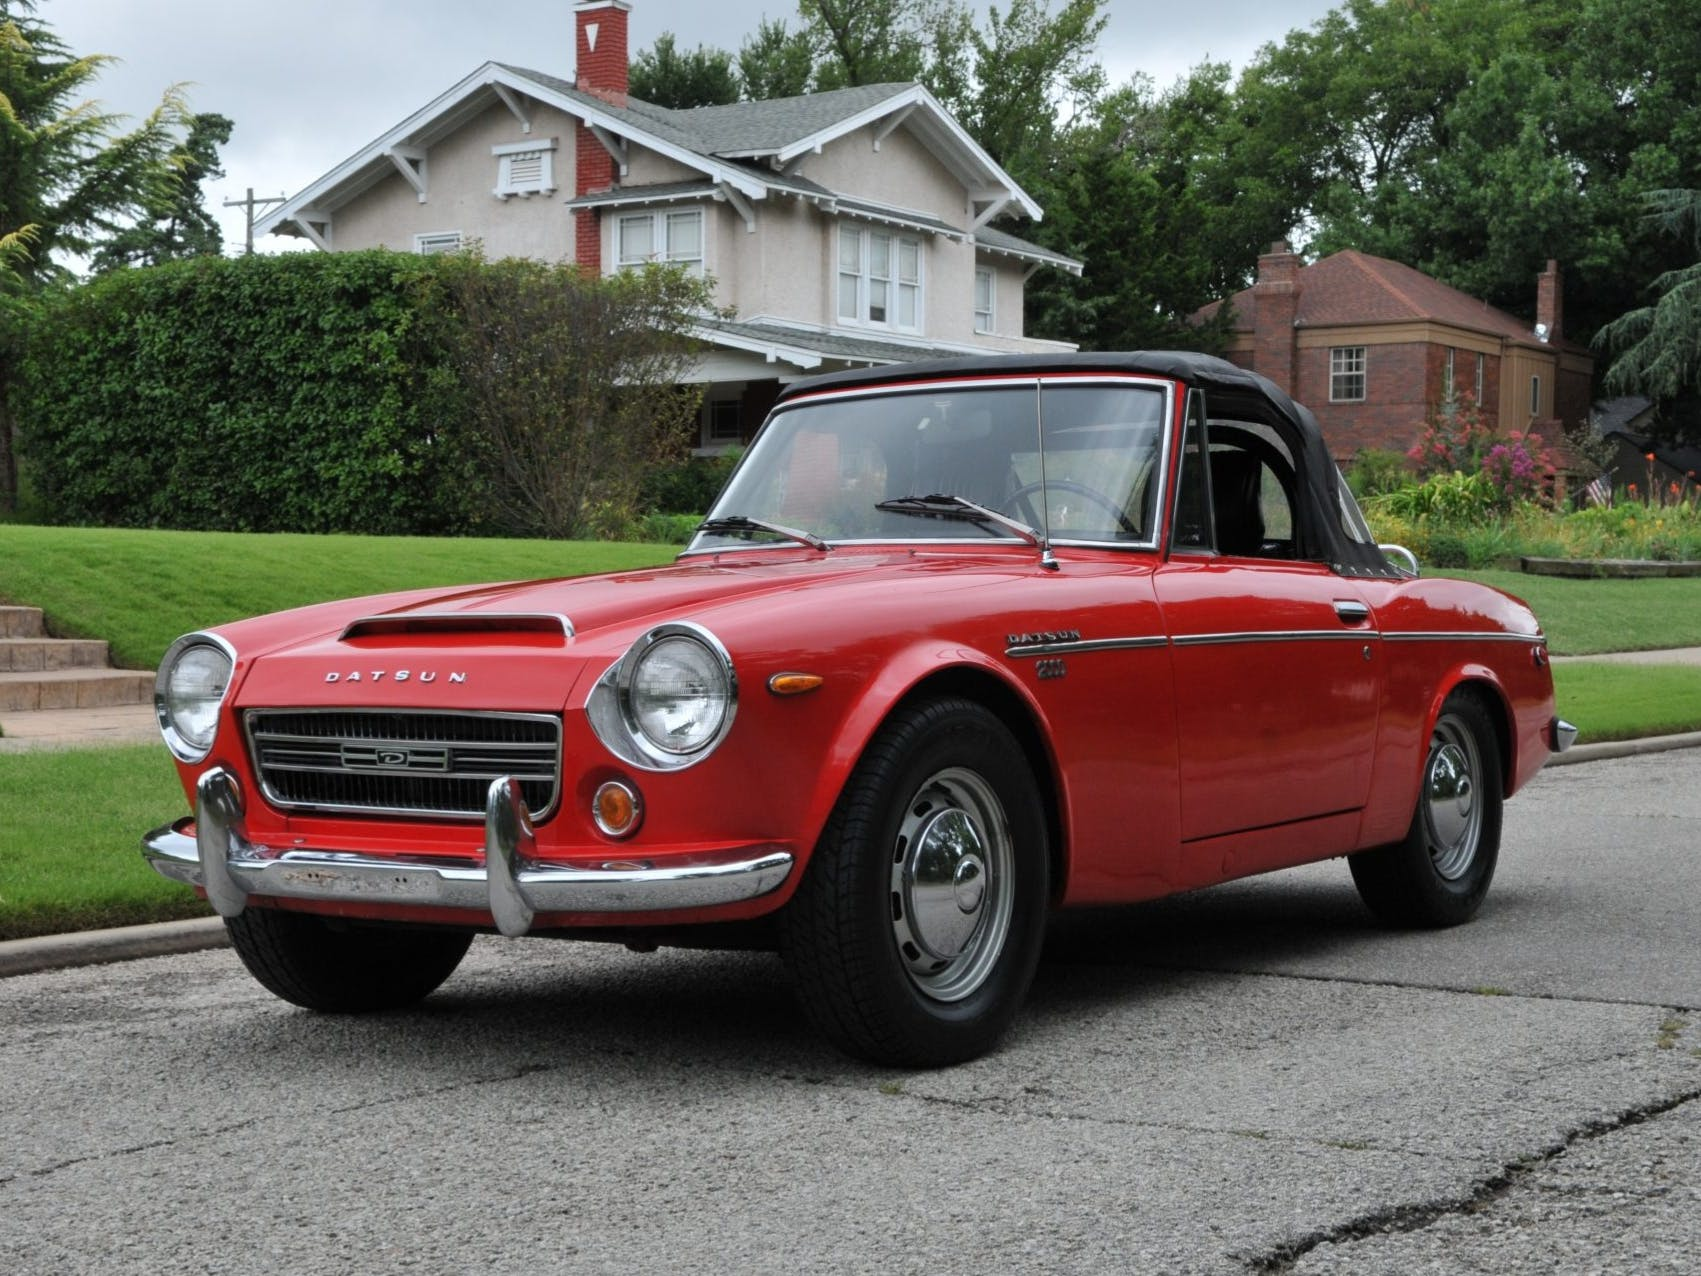 1969 Datsun 2000 Roadster 5-Speed